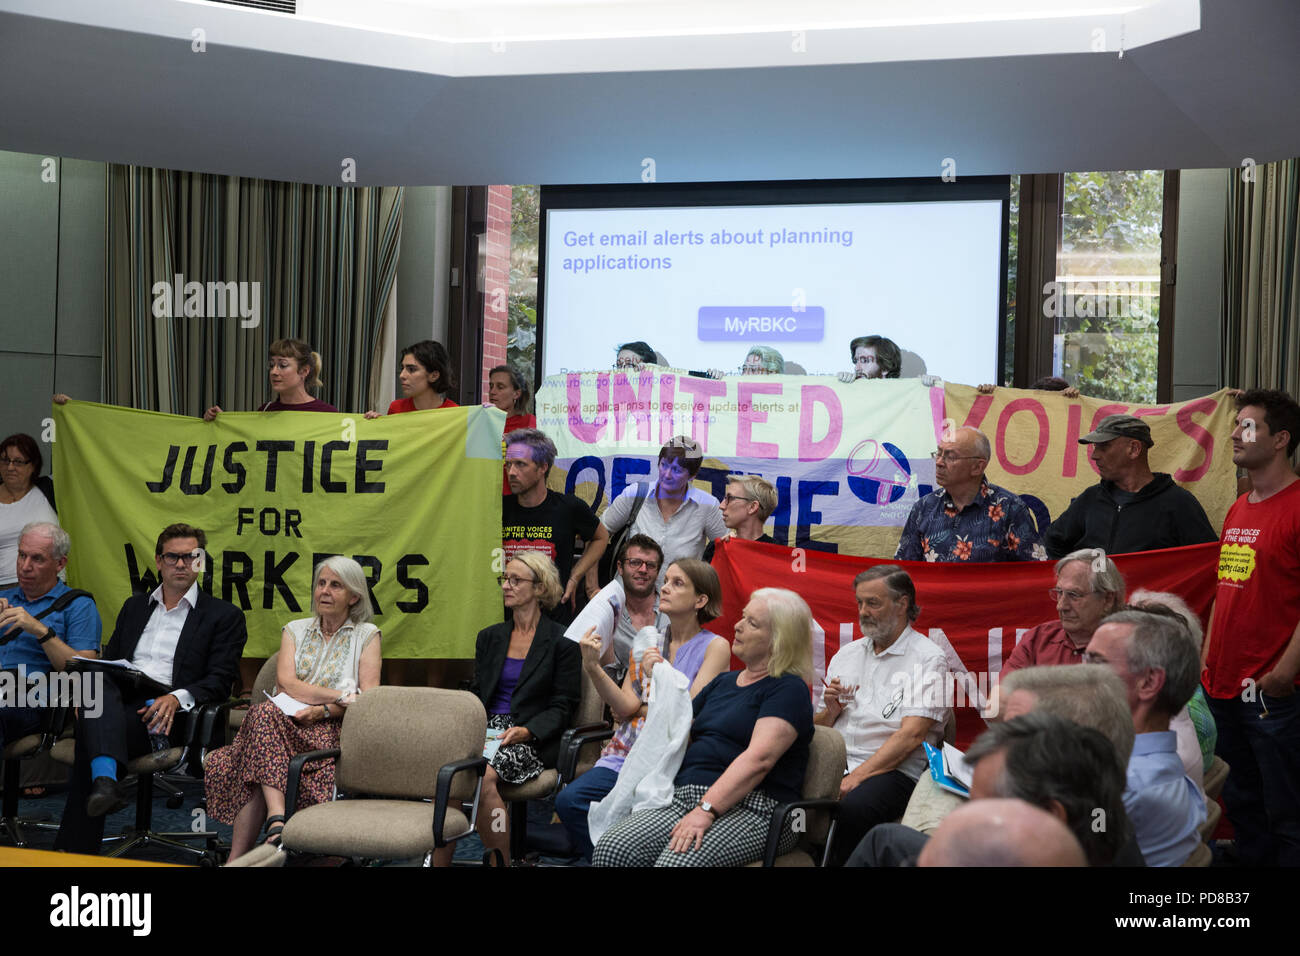 London, UK. 7th August, 2018. Members and supporters of the United Voices of the World (UVW) trade union protest inside a Planning Committee meeting to draw attention to a strike by migrants working for the Royal Borough of Kensington and Chelsea. Striking workers are seeking an occupational sick pay scheme, parity of terms and conditions with directly employed staff and payment of the London Living Wage with guaranteed annual increments. Credit: Mark Kerrison/Alamy Live News - Stock Image